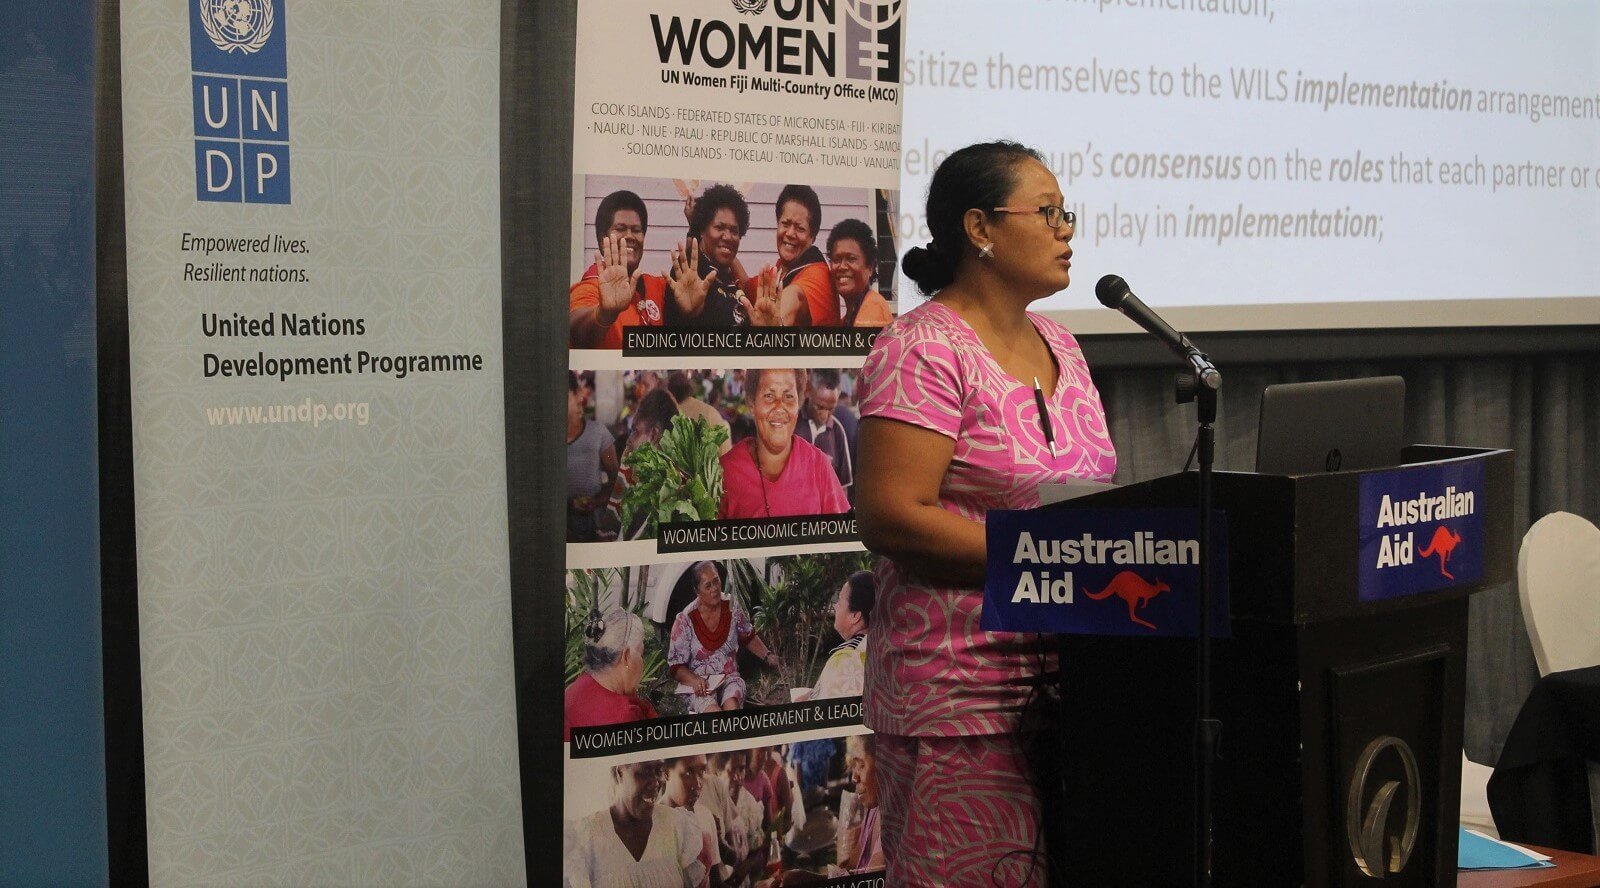 Launch of the Women in Leadership in Samoa Project, 4 April 2018 (Photo: Cherelle Fruean, UN Women Asia and the Pacific/Flickr)